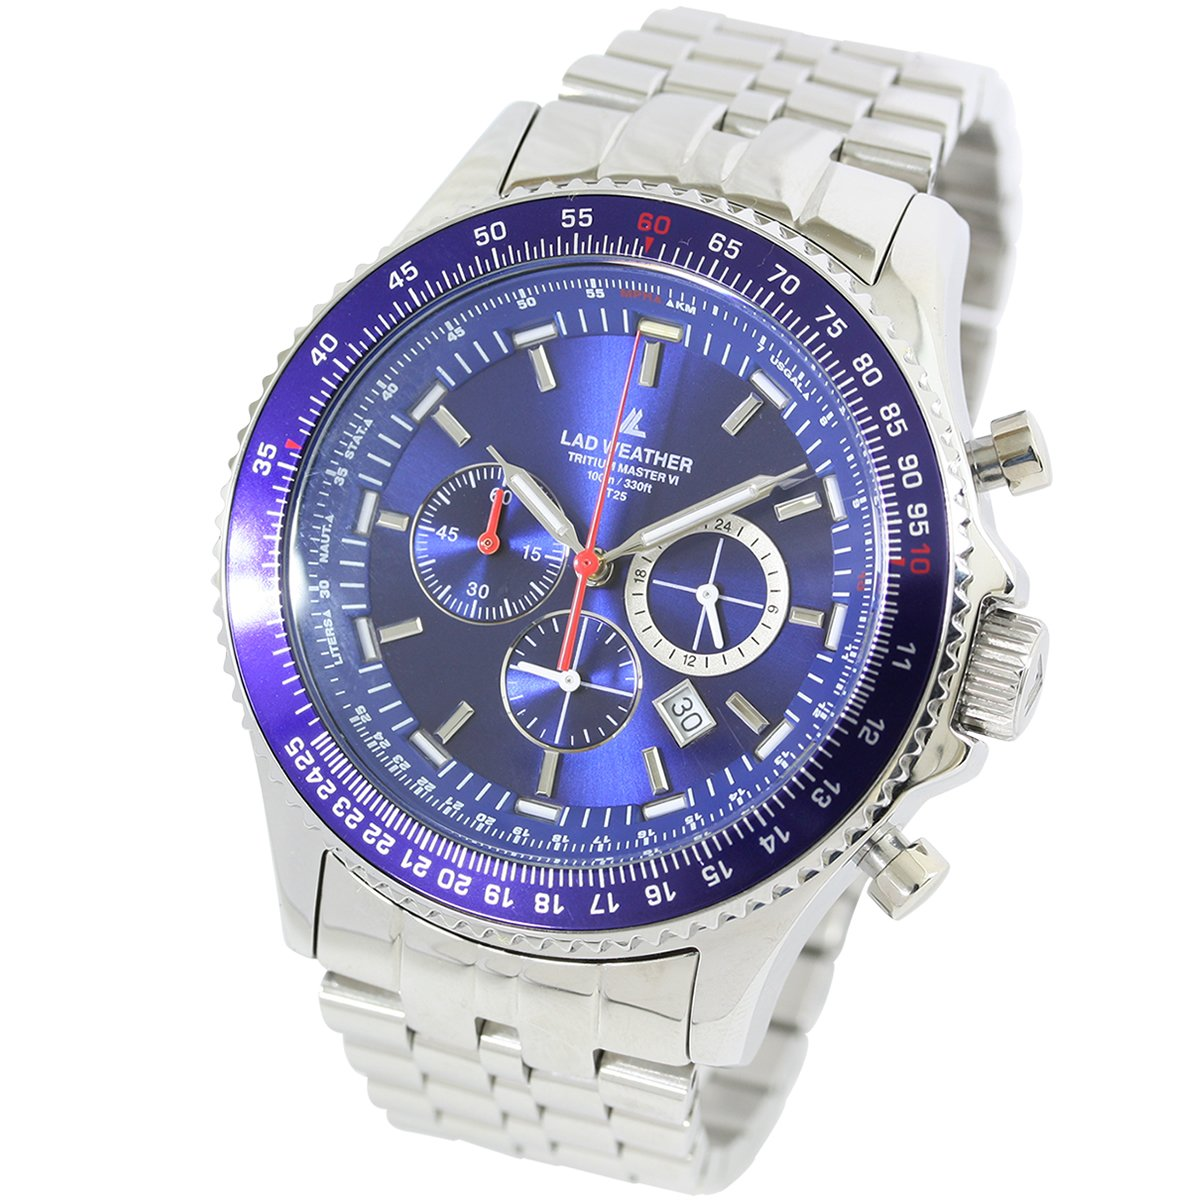 [LAD WEATHER] Swiss Tritium Pilot Chronograph Circular Logarithmic Slide Rule 100 Meter's Water Resistant Men's watch by LAD WEATHER